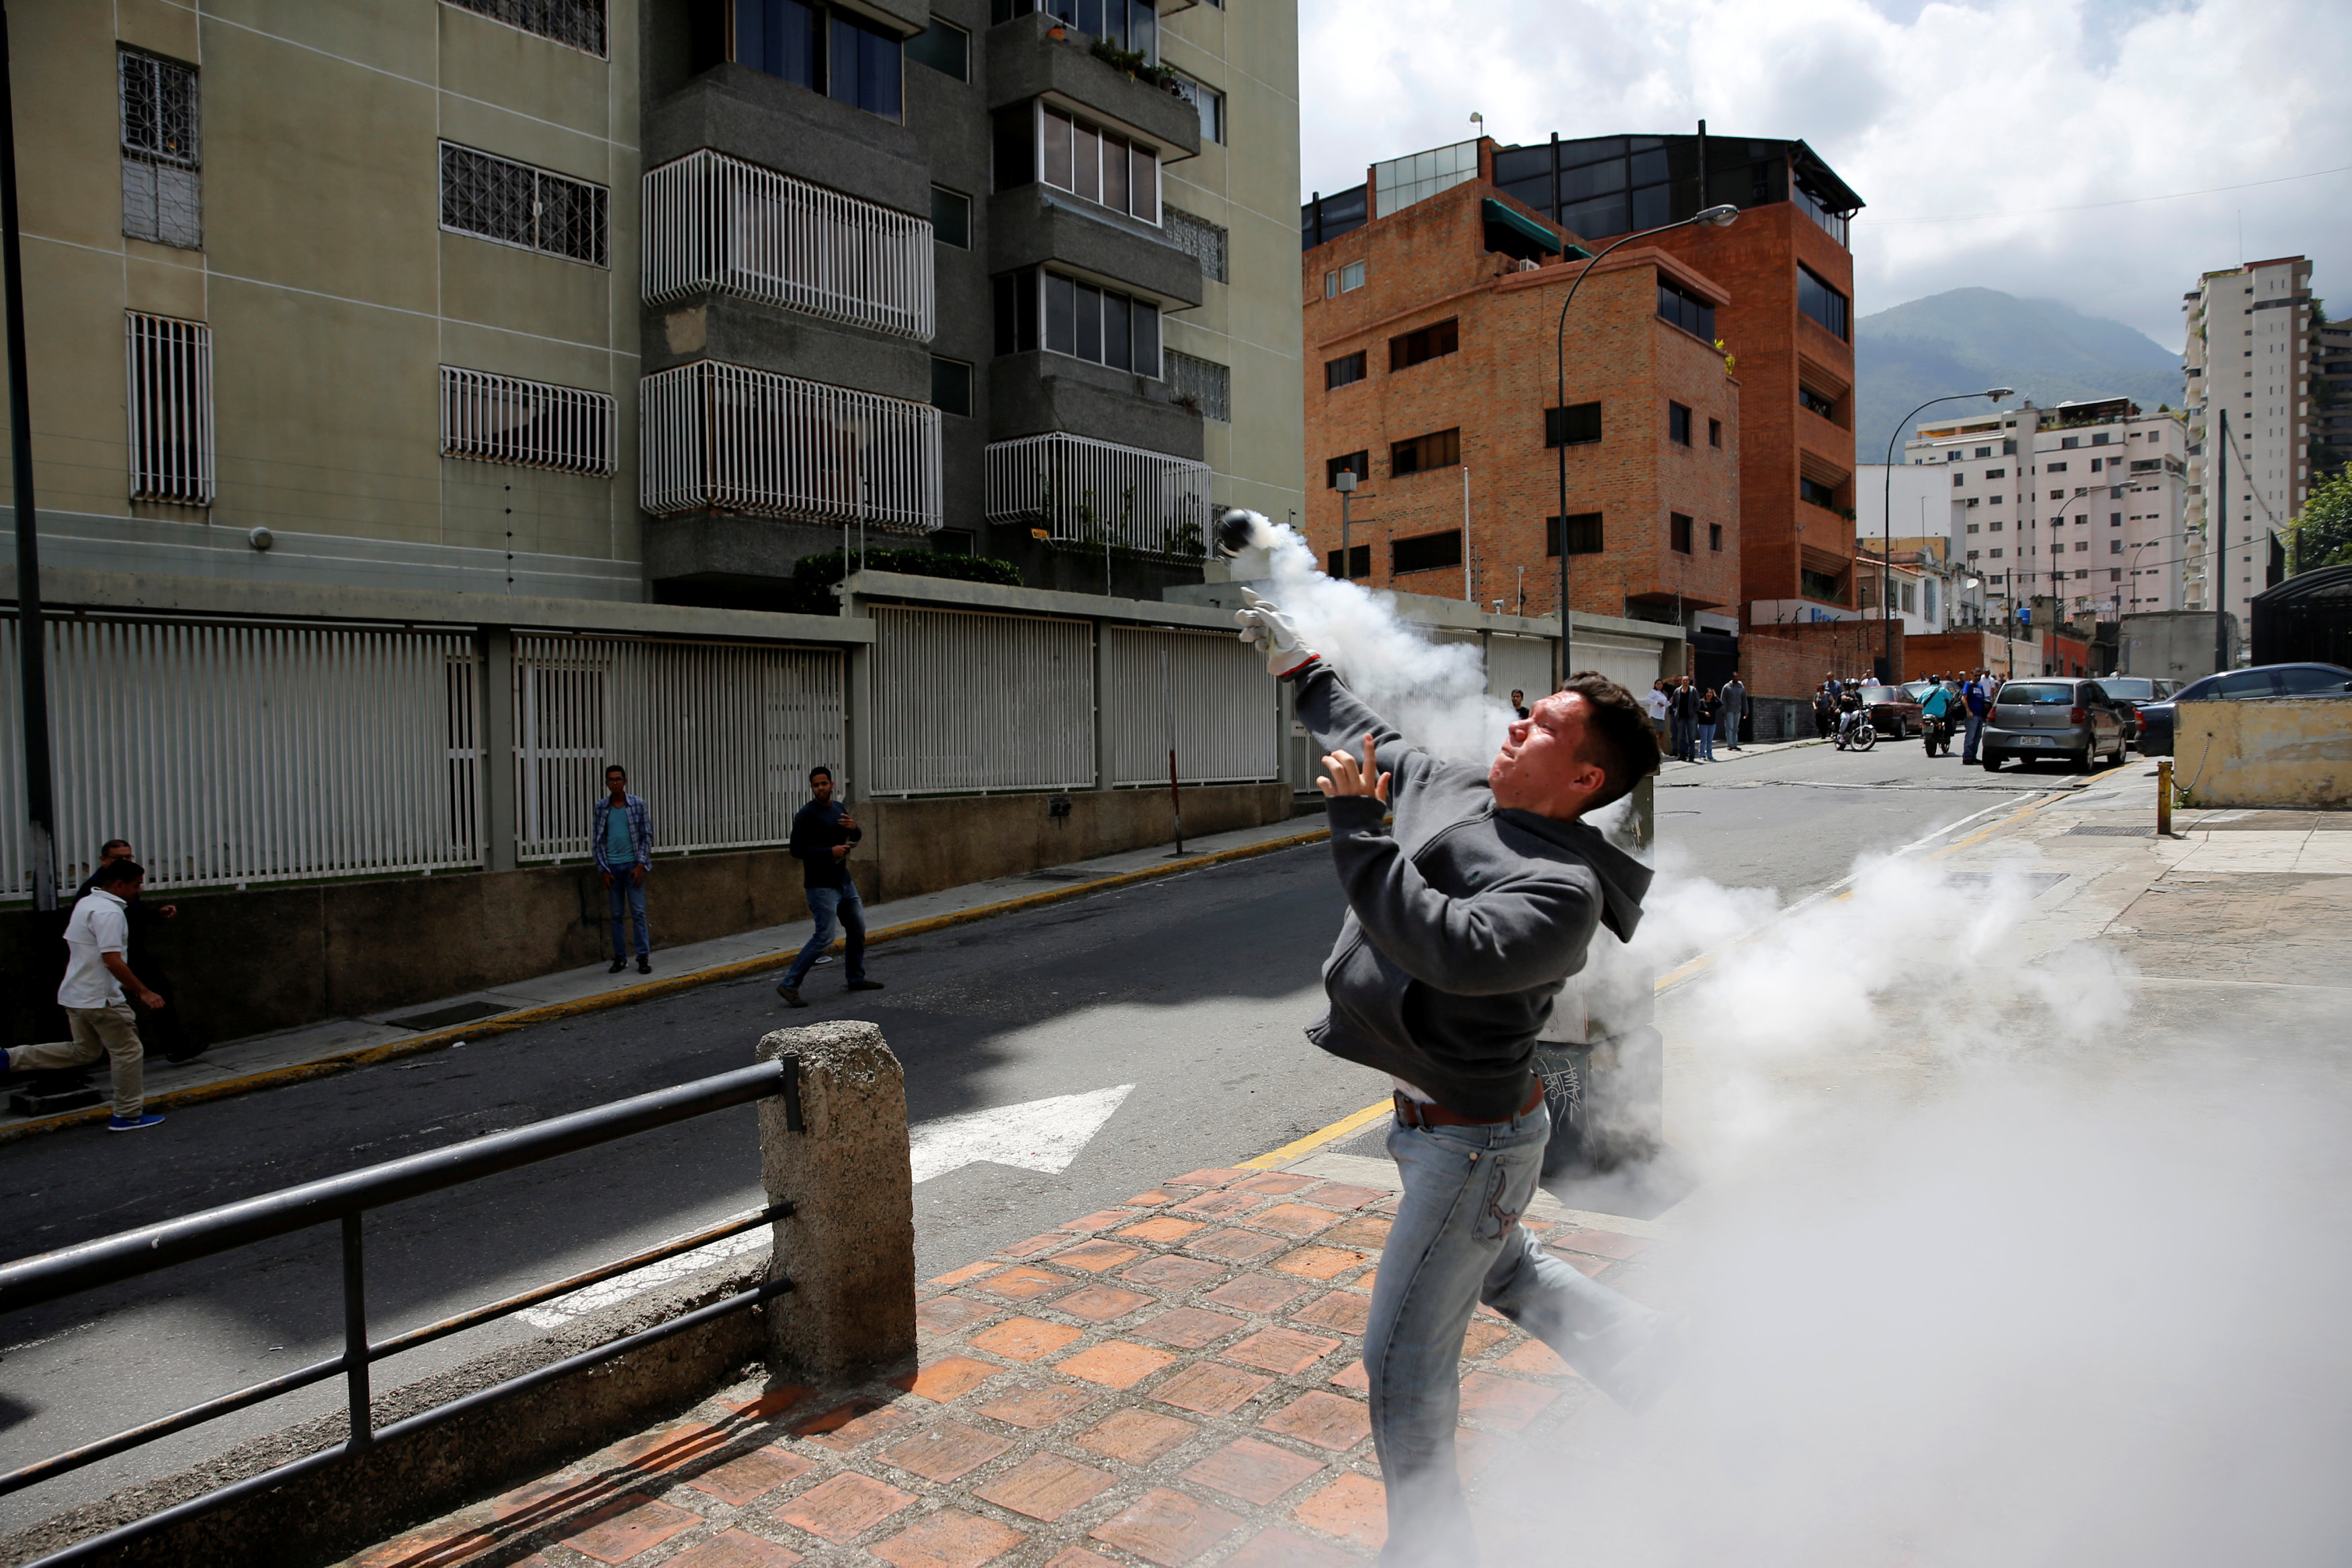 A demonstrator throws back a tear gas grenade while clashing with riot security forces during a rally against Venezuela's President Nicolas Maduro's Government in Caracas, Venezuela June 23, 2017. REUTERS/Ivan Alvarado